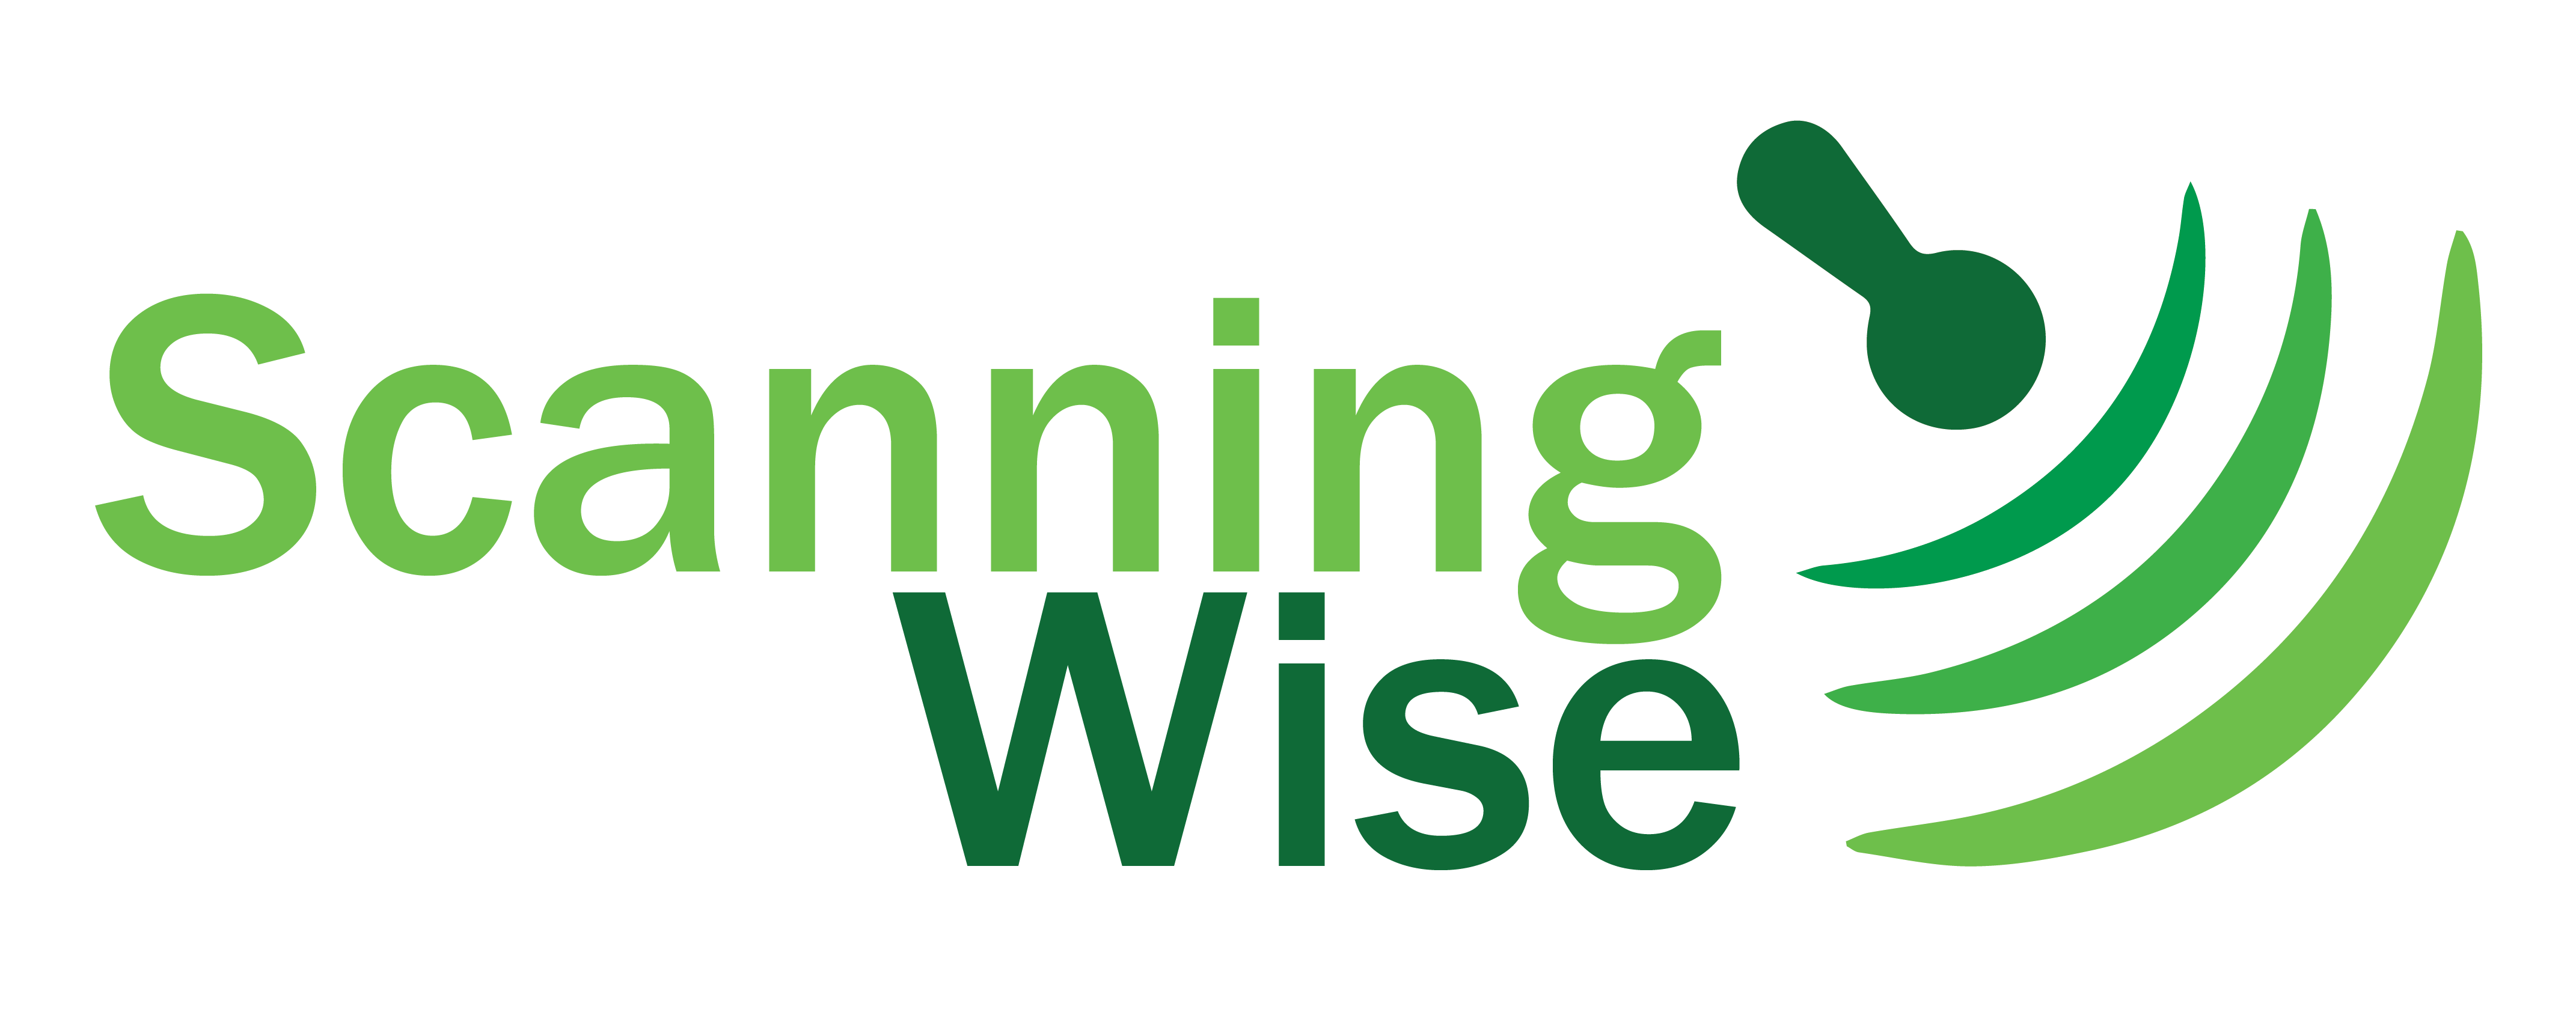 Scanning Wise Logo and Website